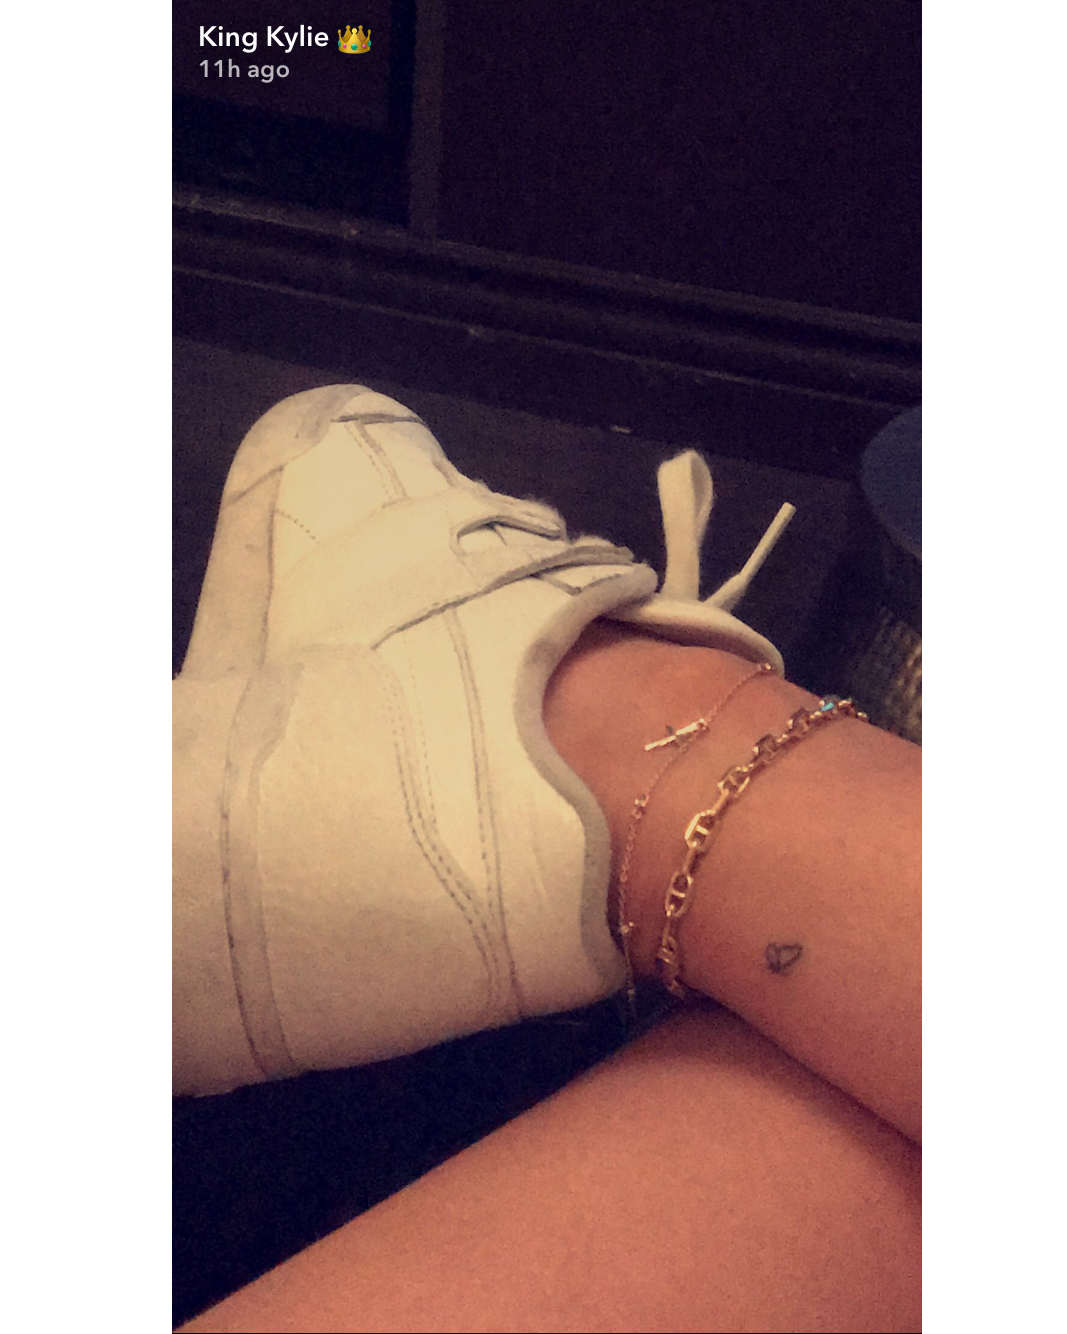 Kylie Jenner Butterfly Tattoo